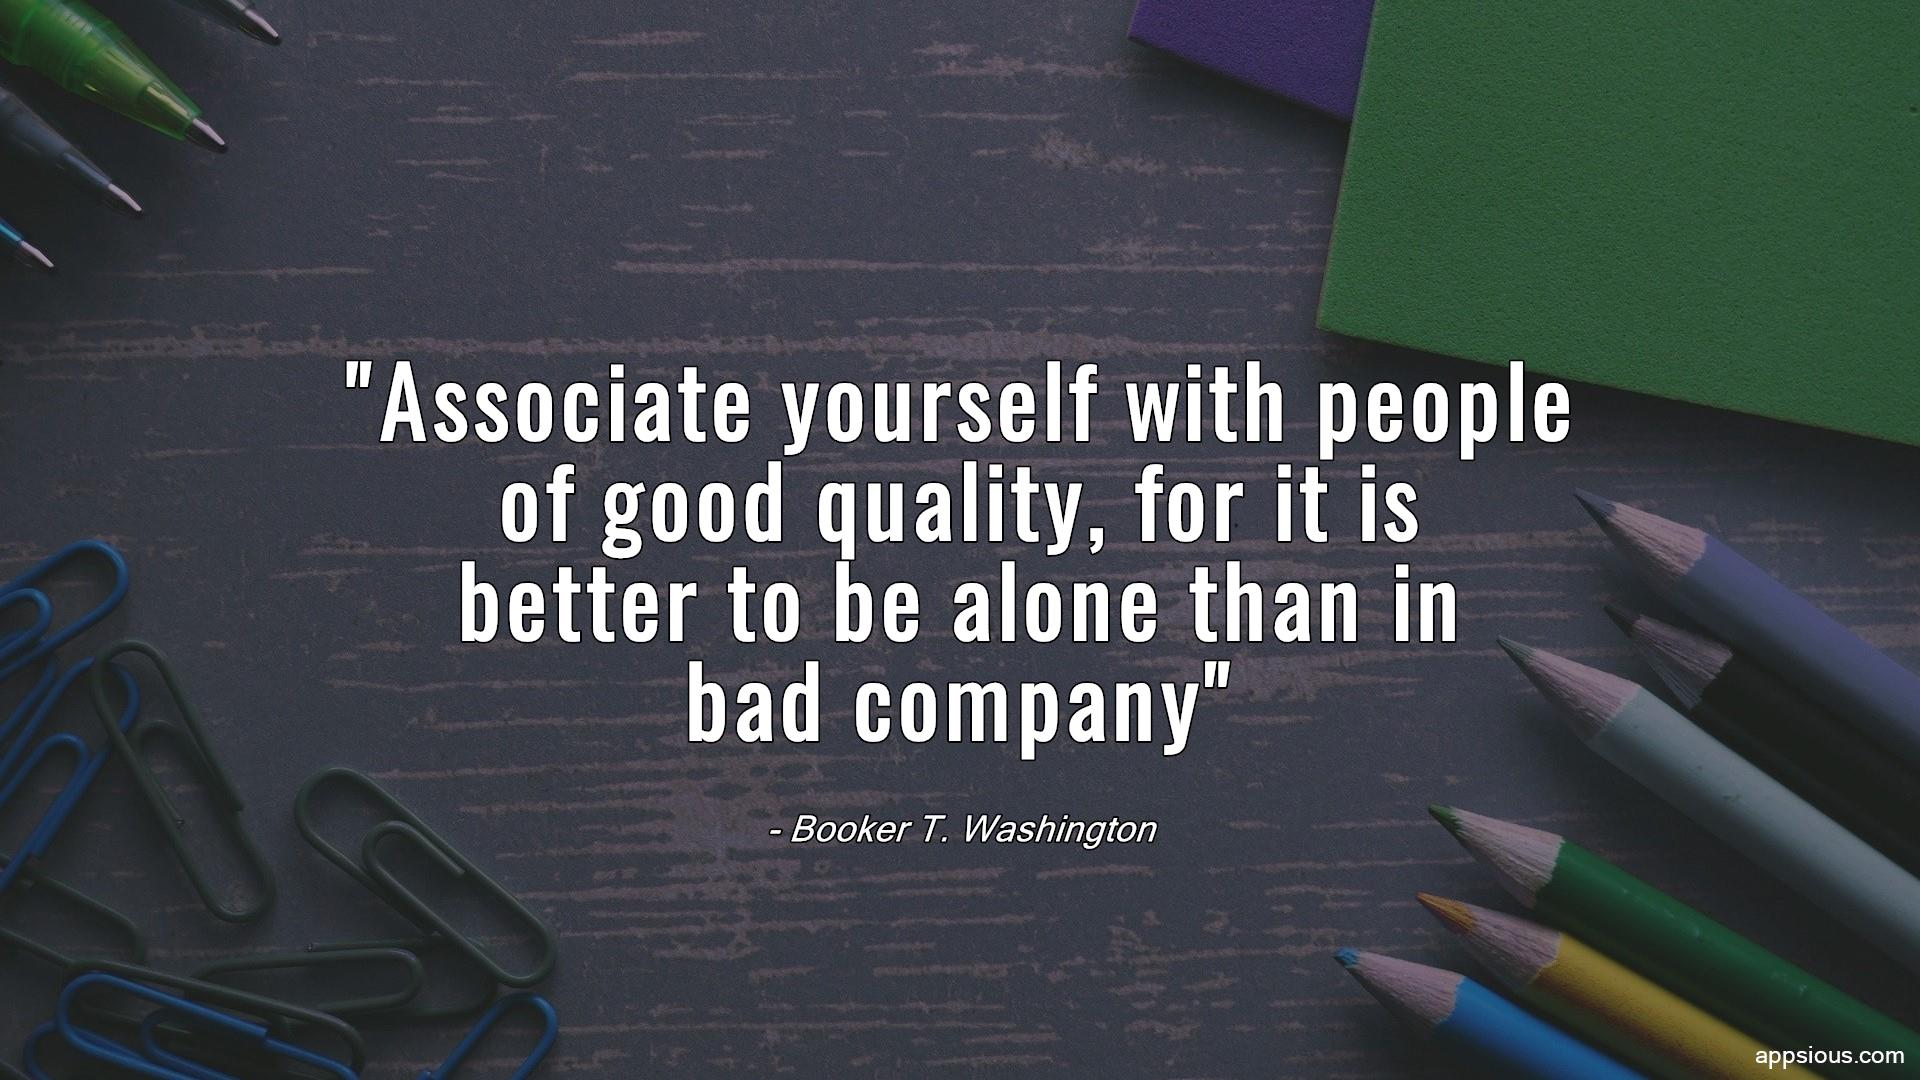 Associate yourself with people of good quality, for it is better to be alone than in bad company